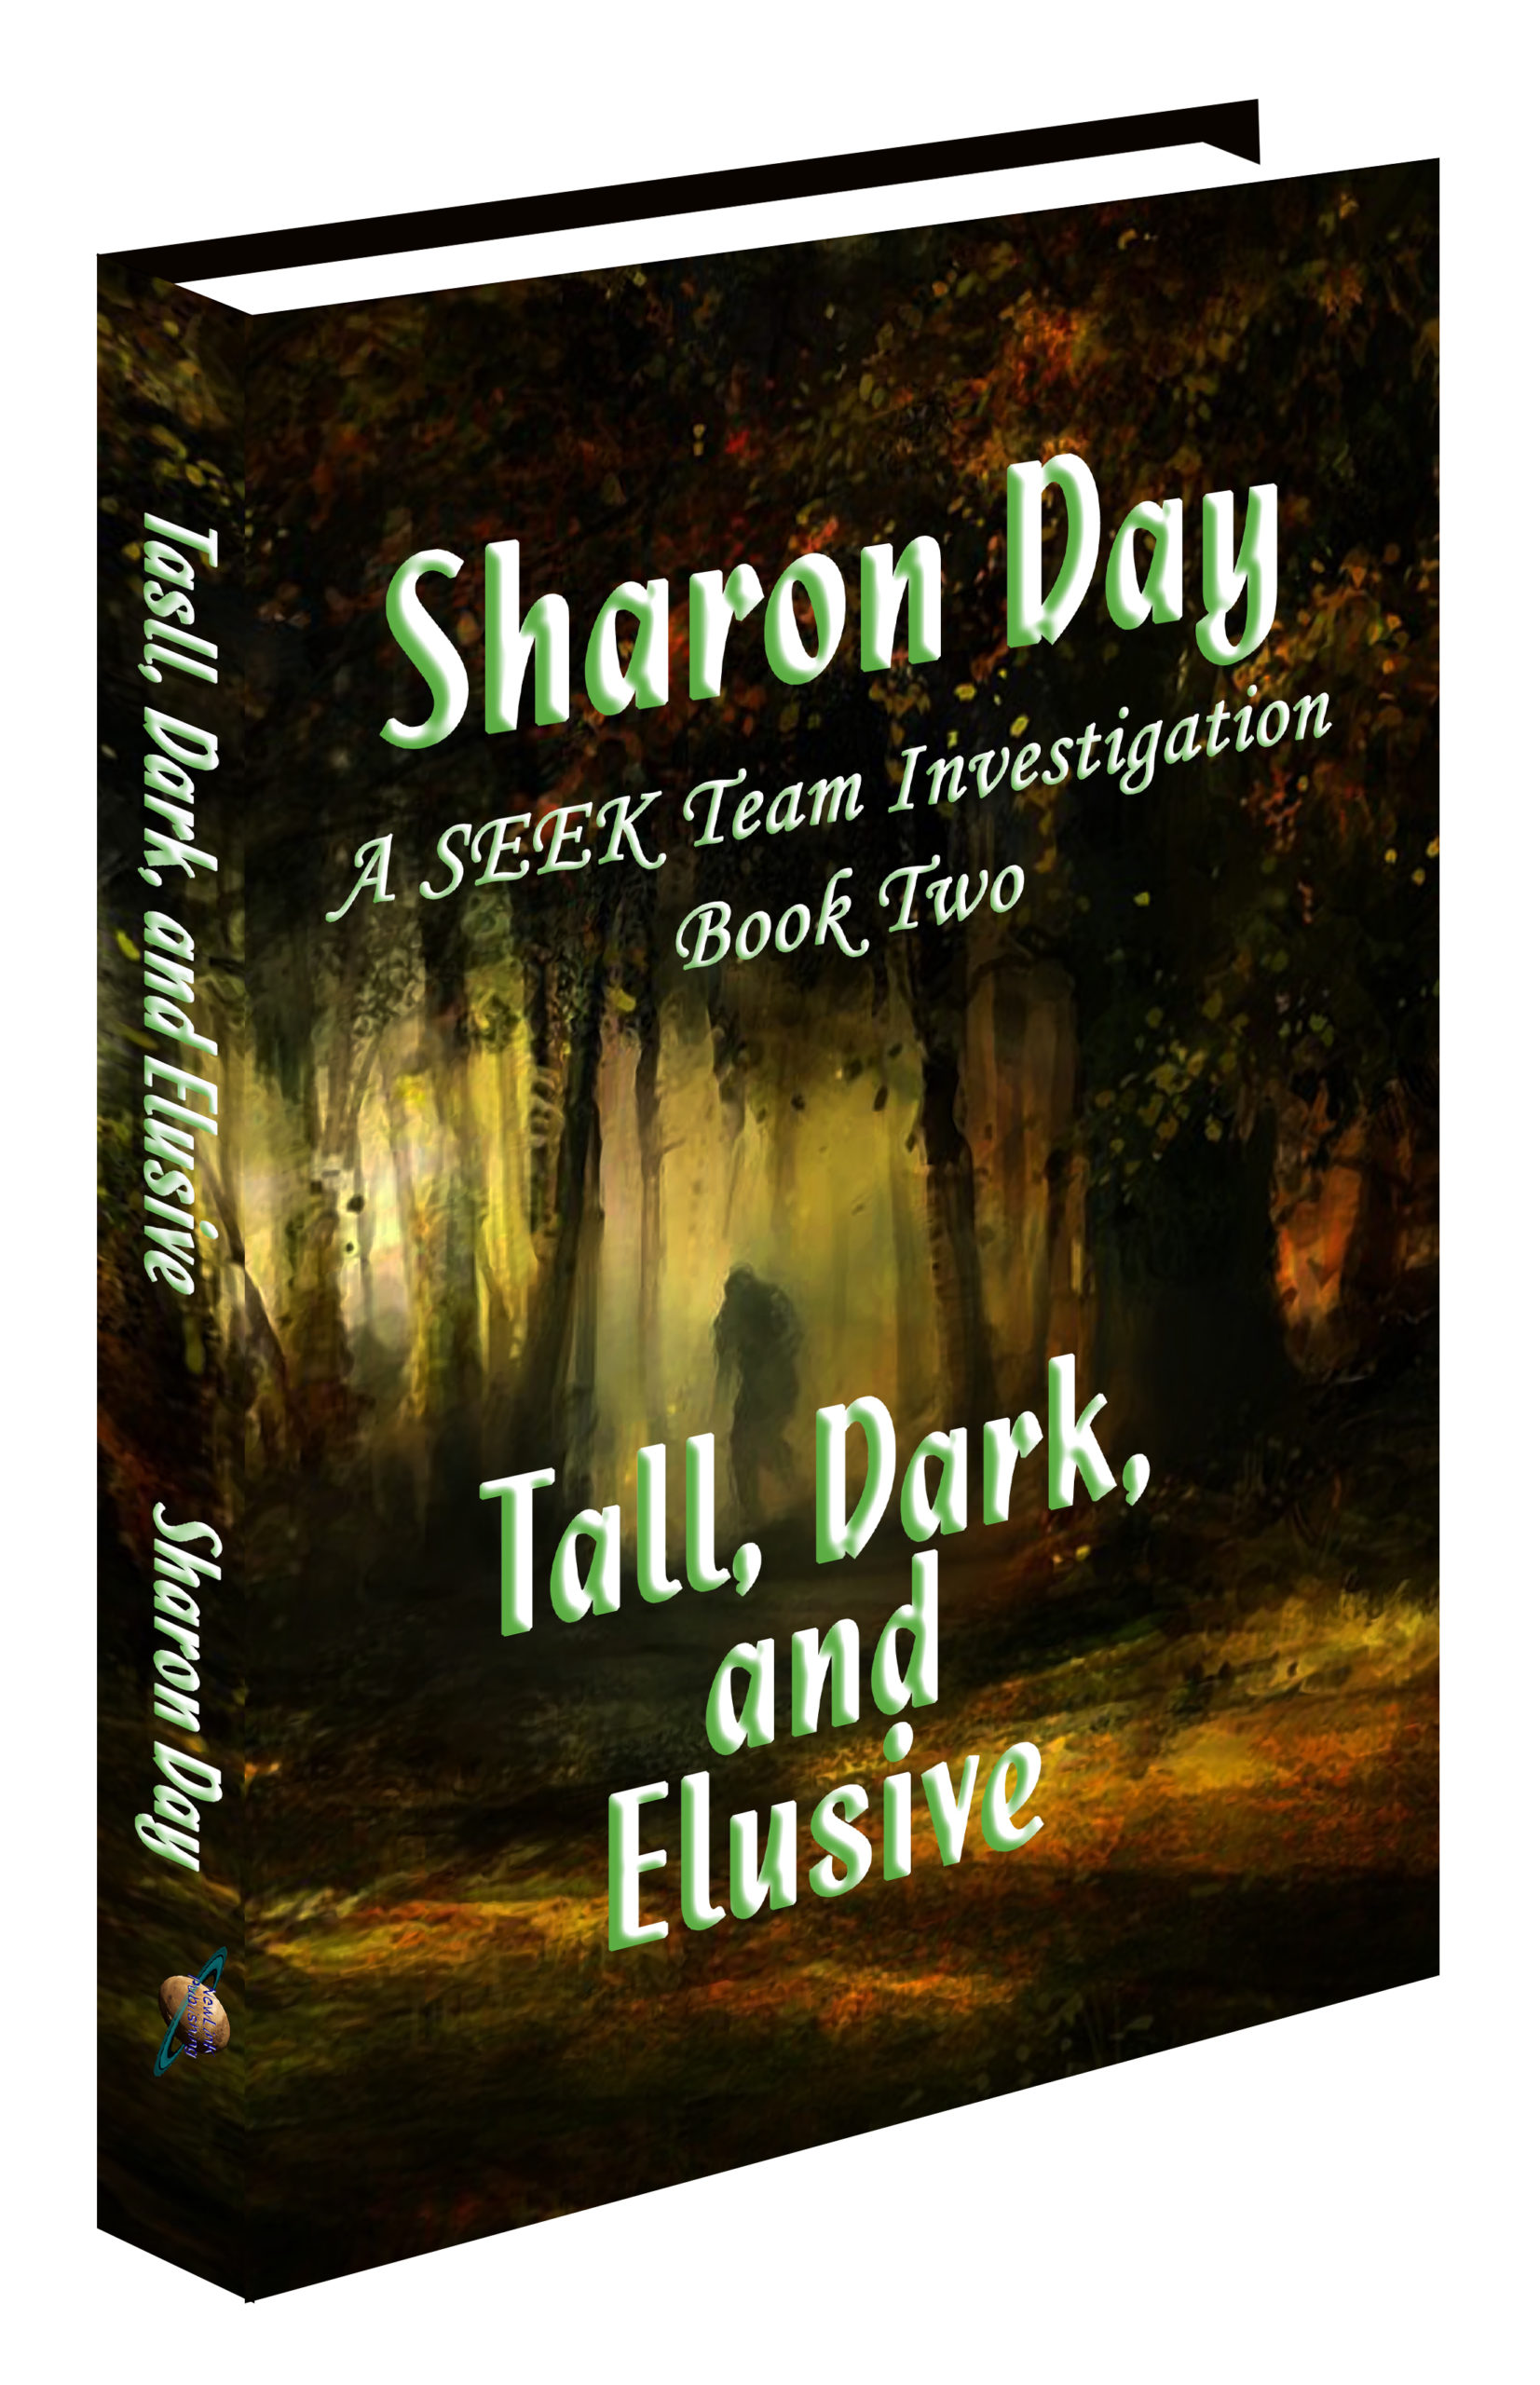 <B>Tall, Dark, and, and Elusive <B /> A SEEK Team Investigation